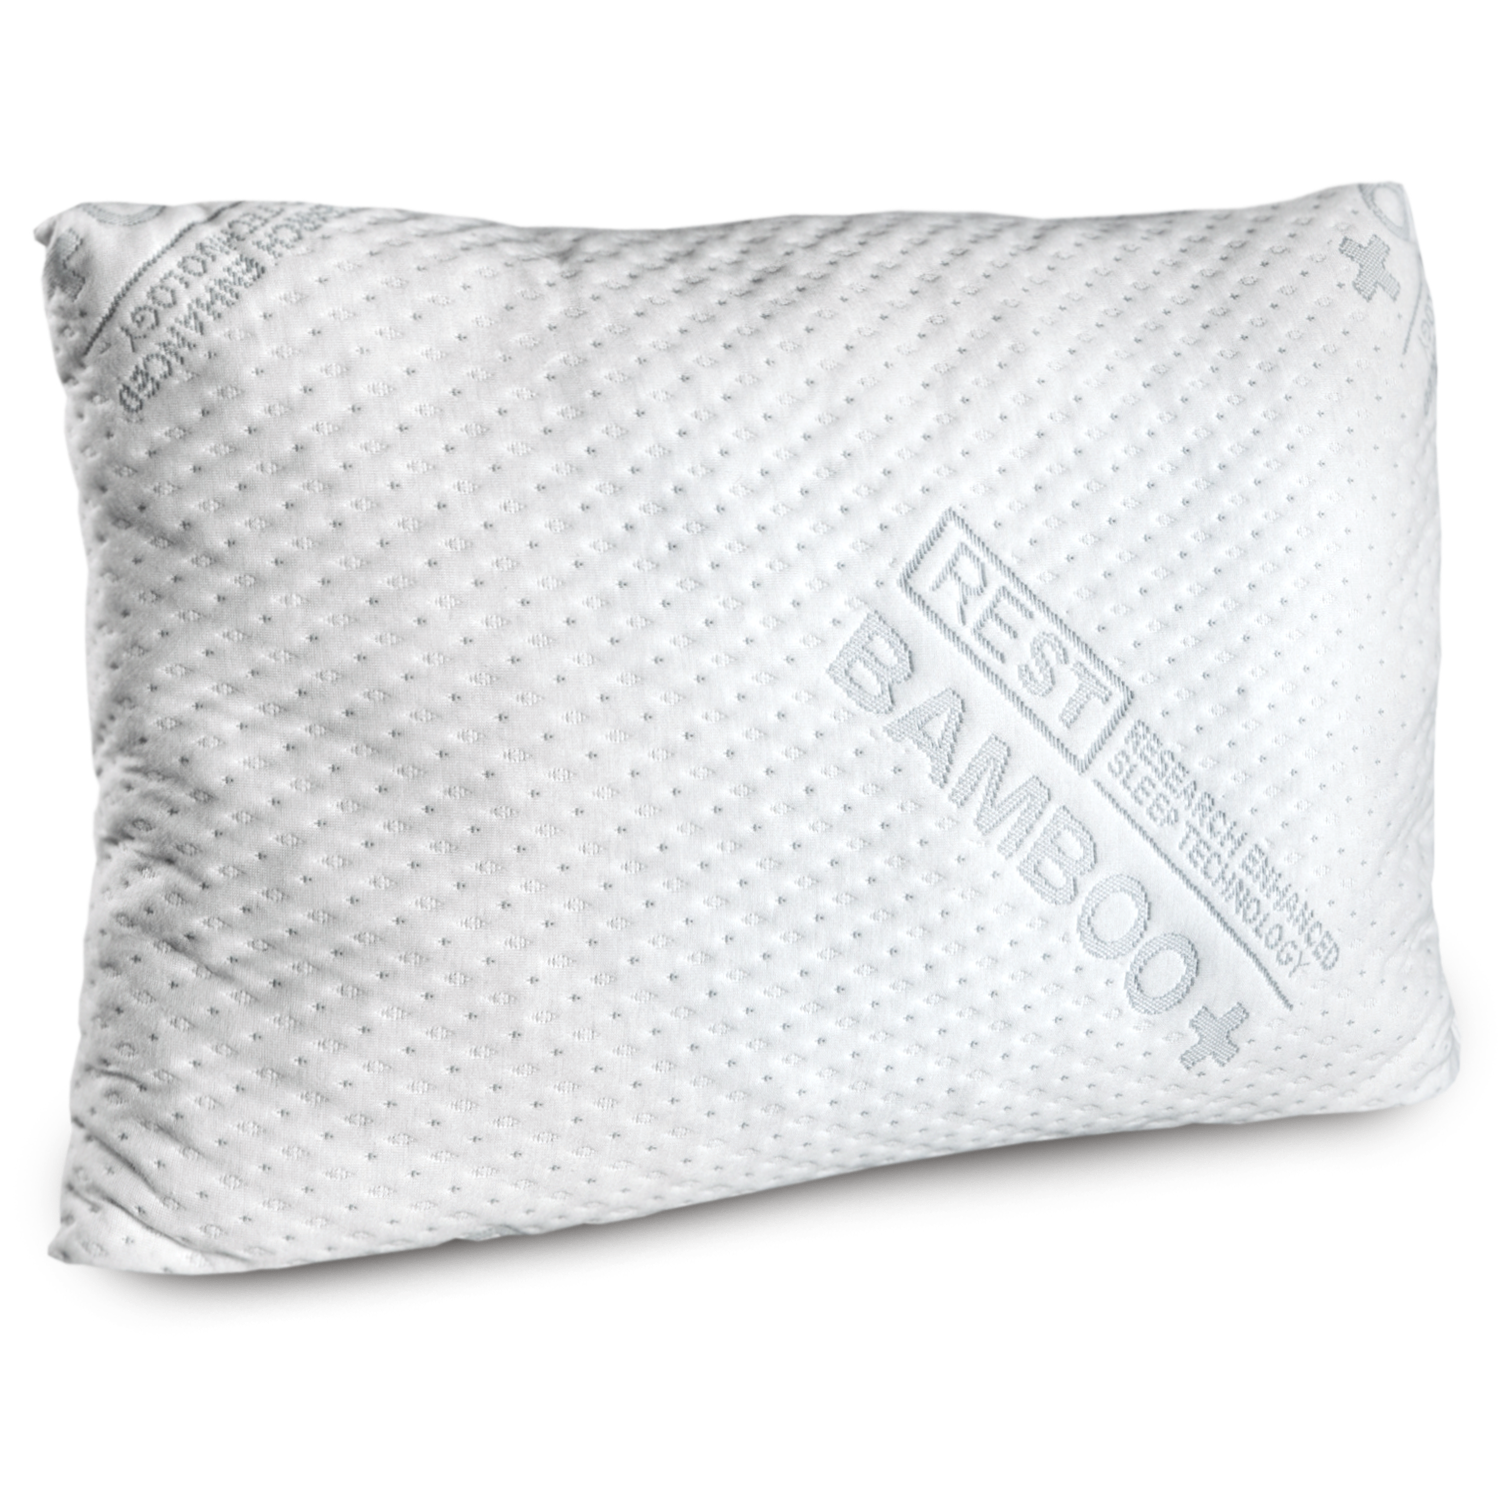 REST Premium Blended Memory Foam Queen Size Pillow